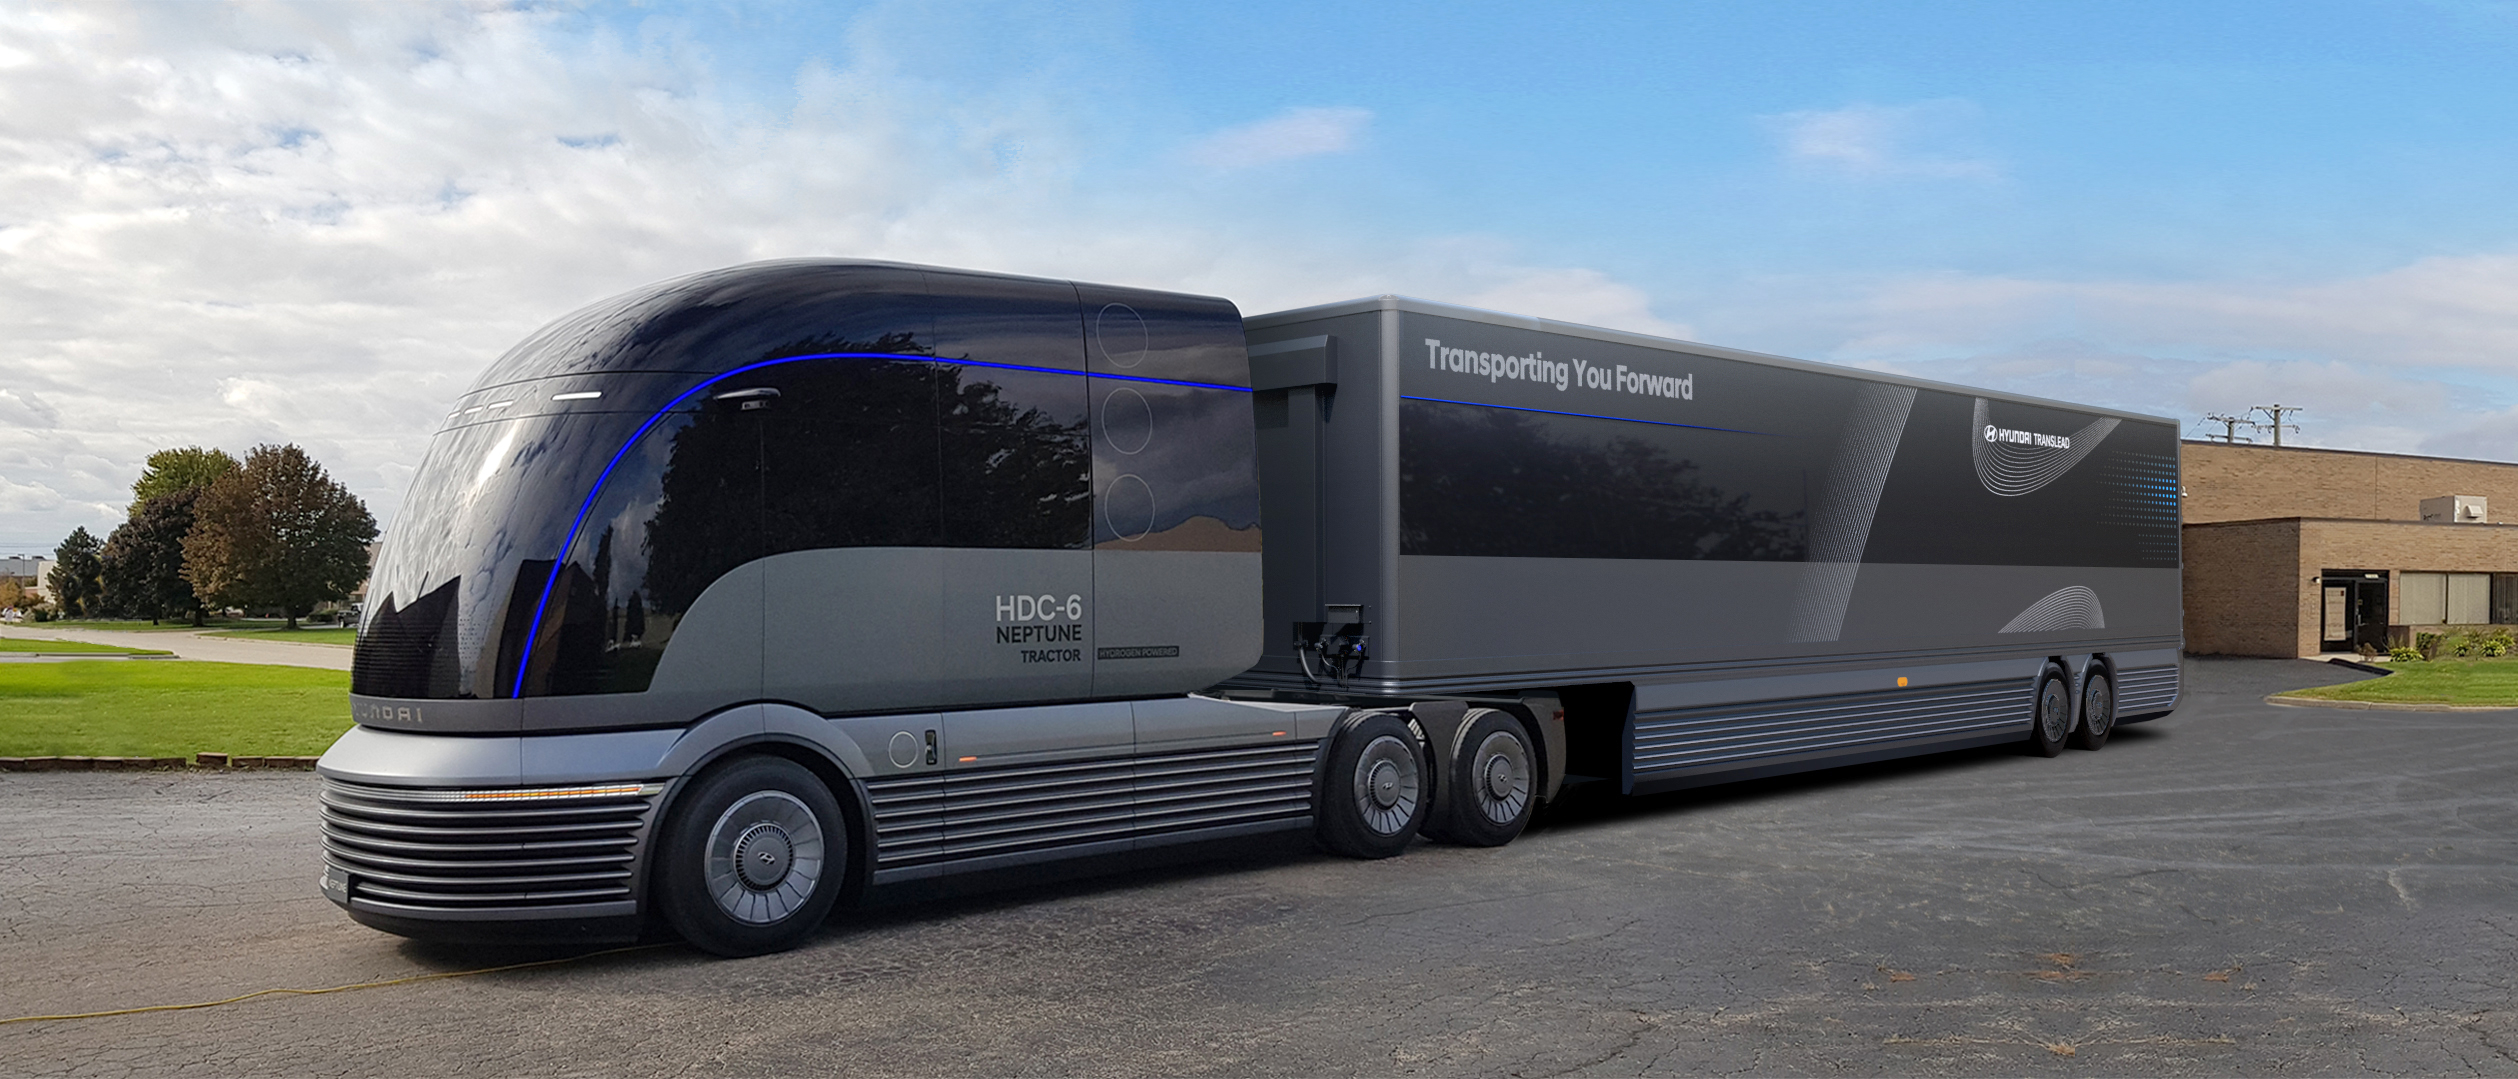 Hyundai Reveals Commercial Truck Mobility Vision at NACV Show